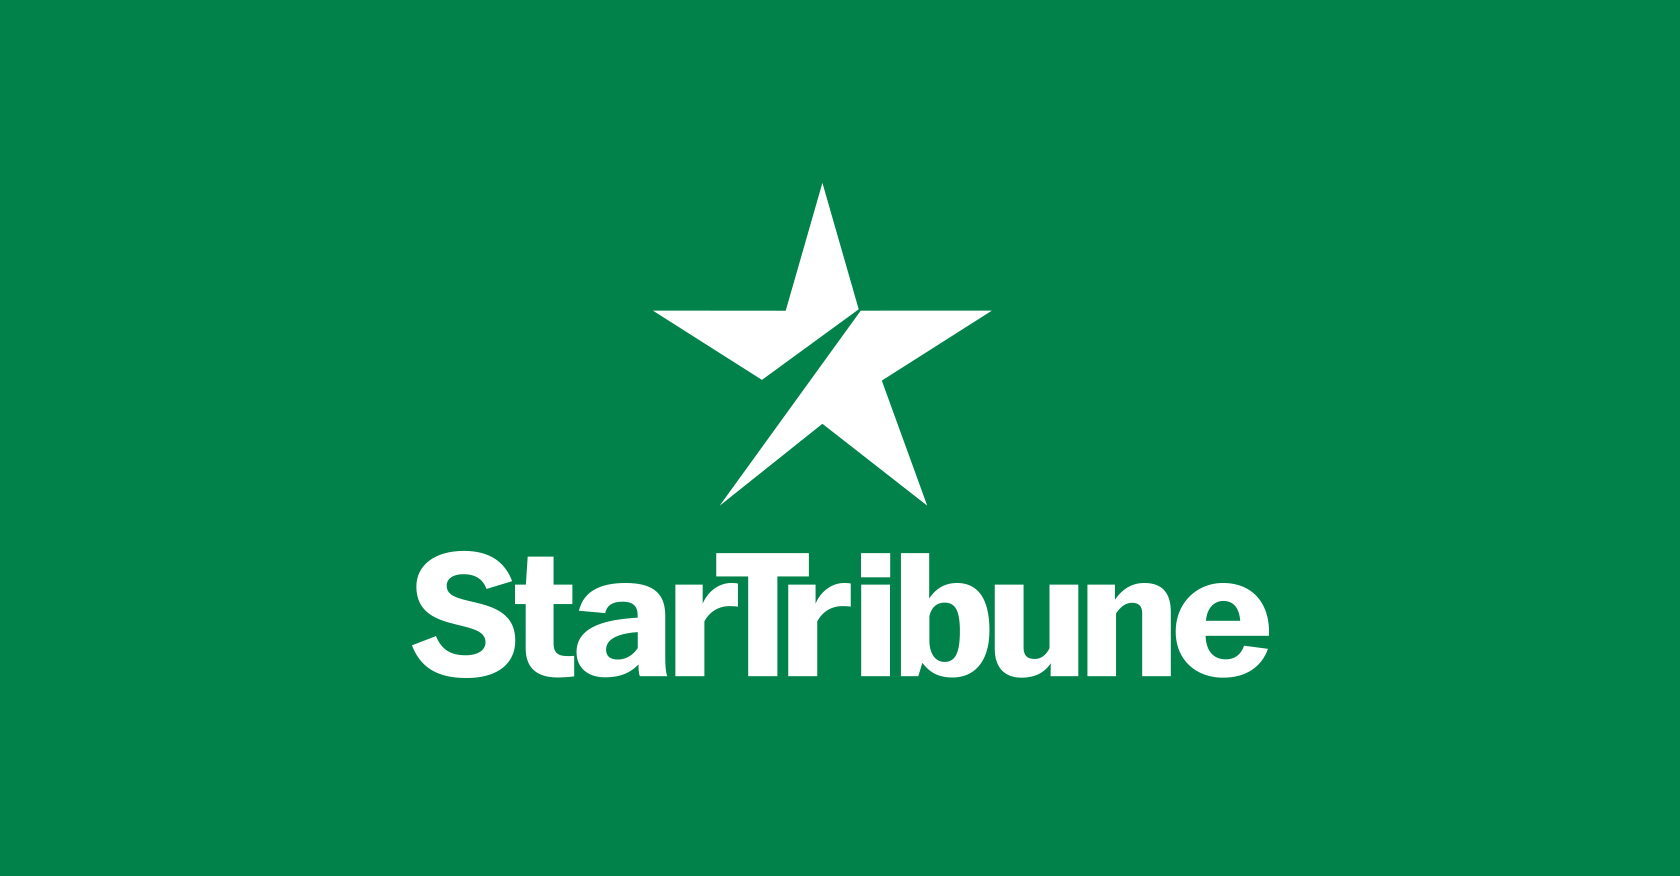 Sign up for daily Star Tribune coronavirus updates